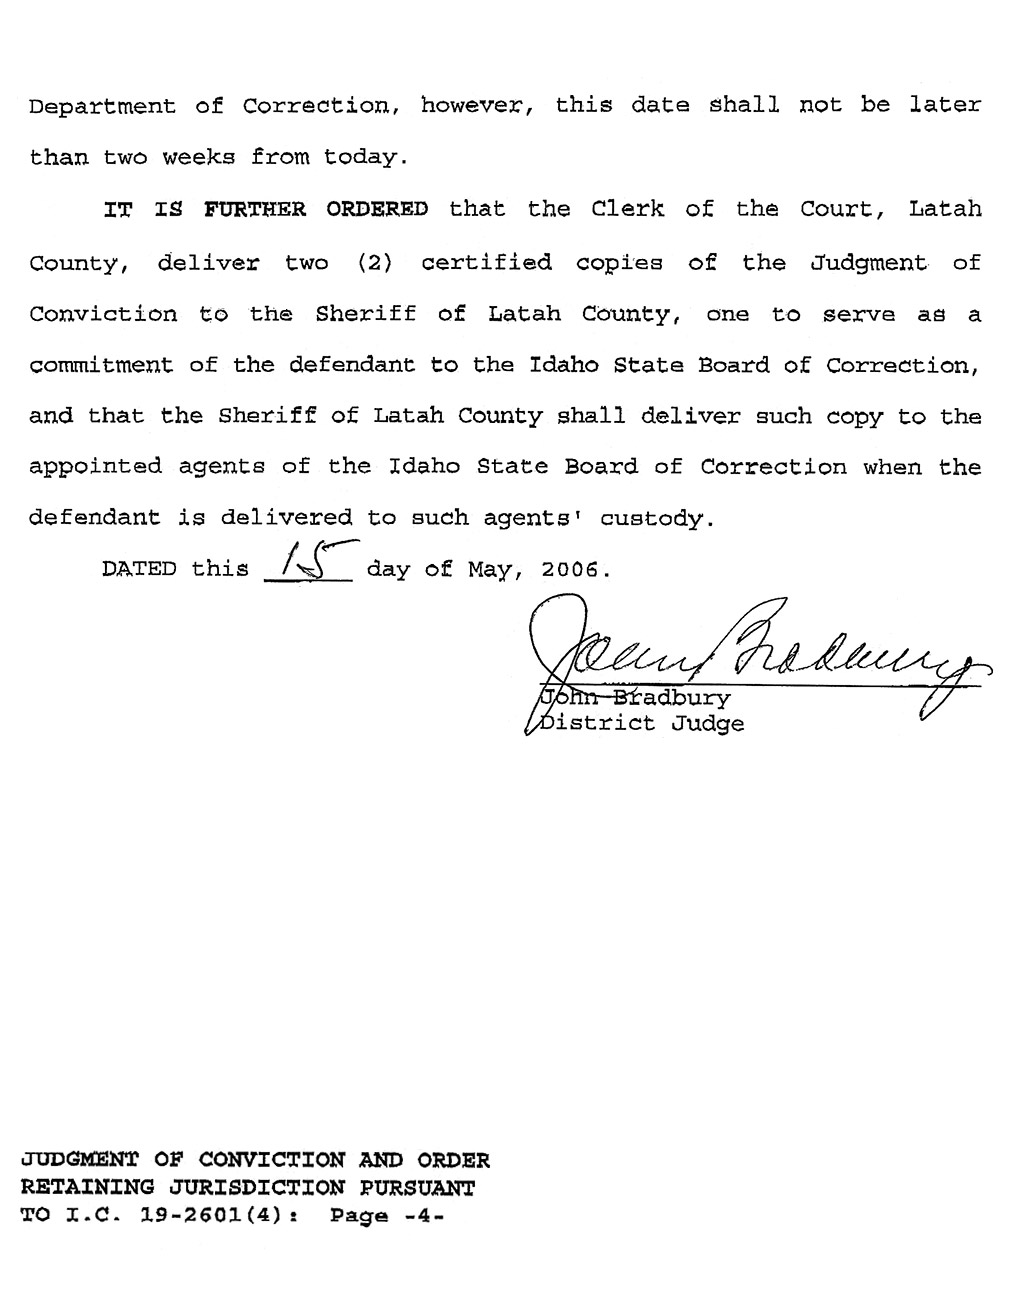 Jamin Wight: Judgment of Conviction and Order Retaining Jurisdiction page 4